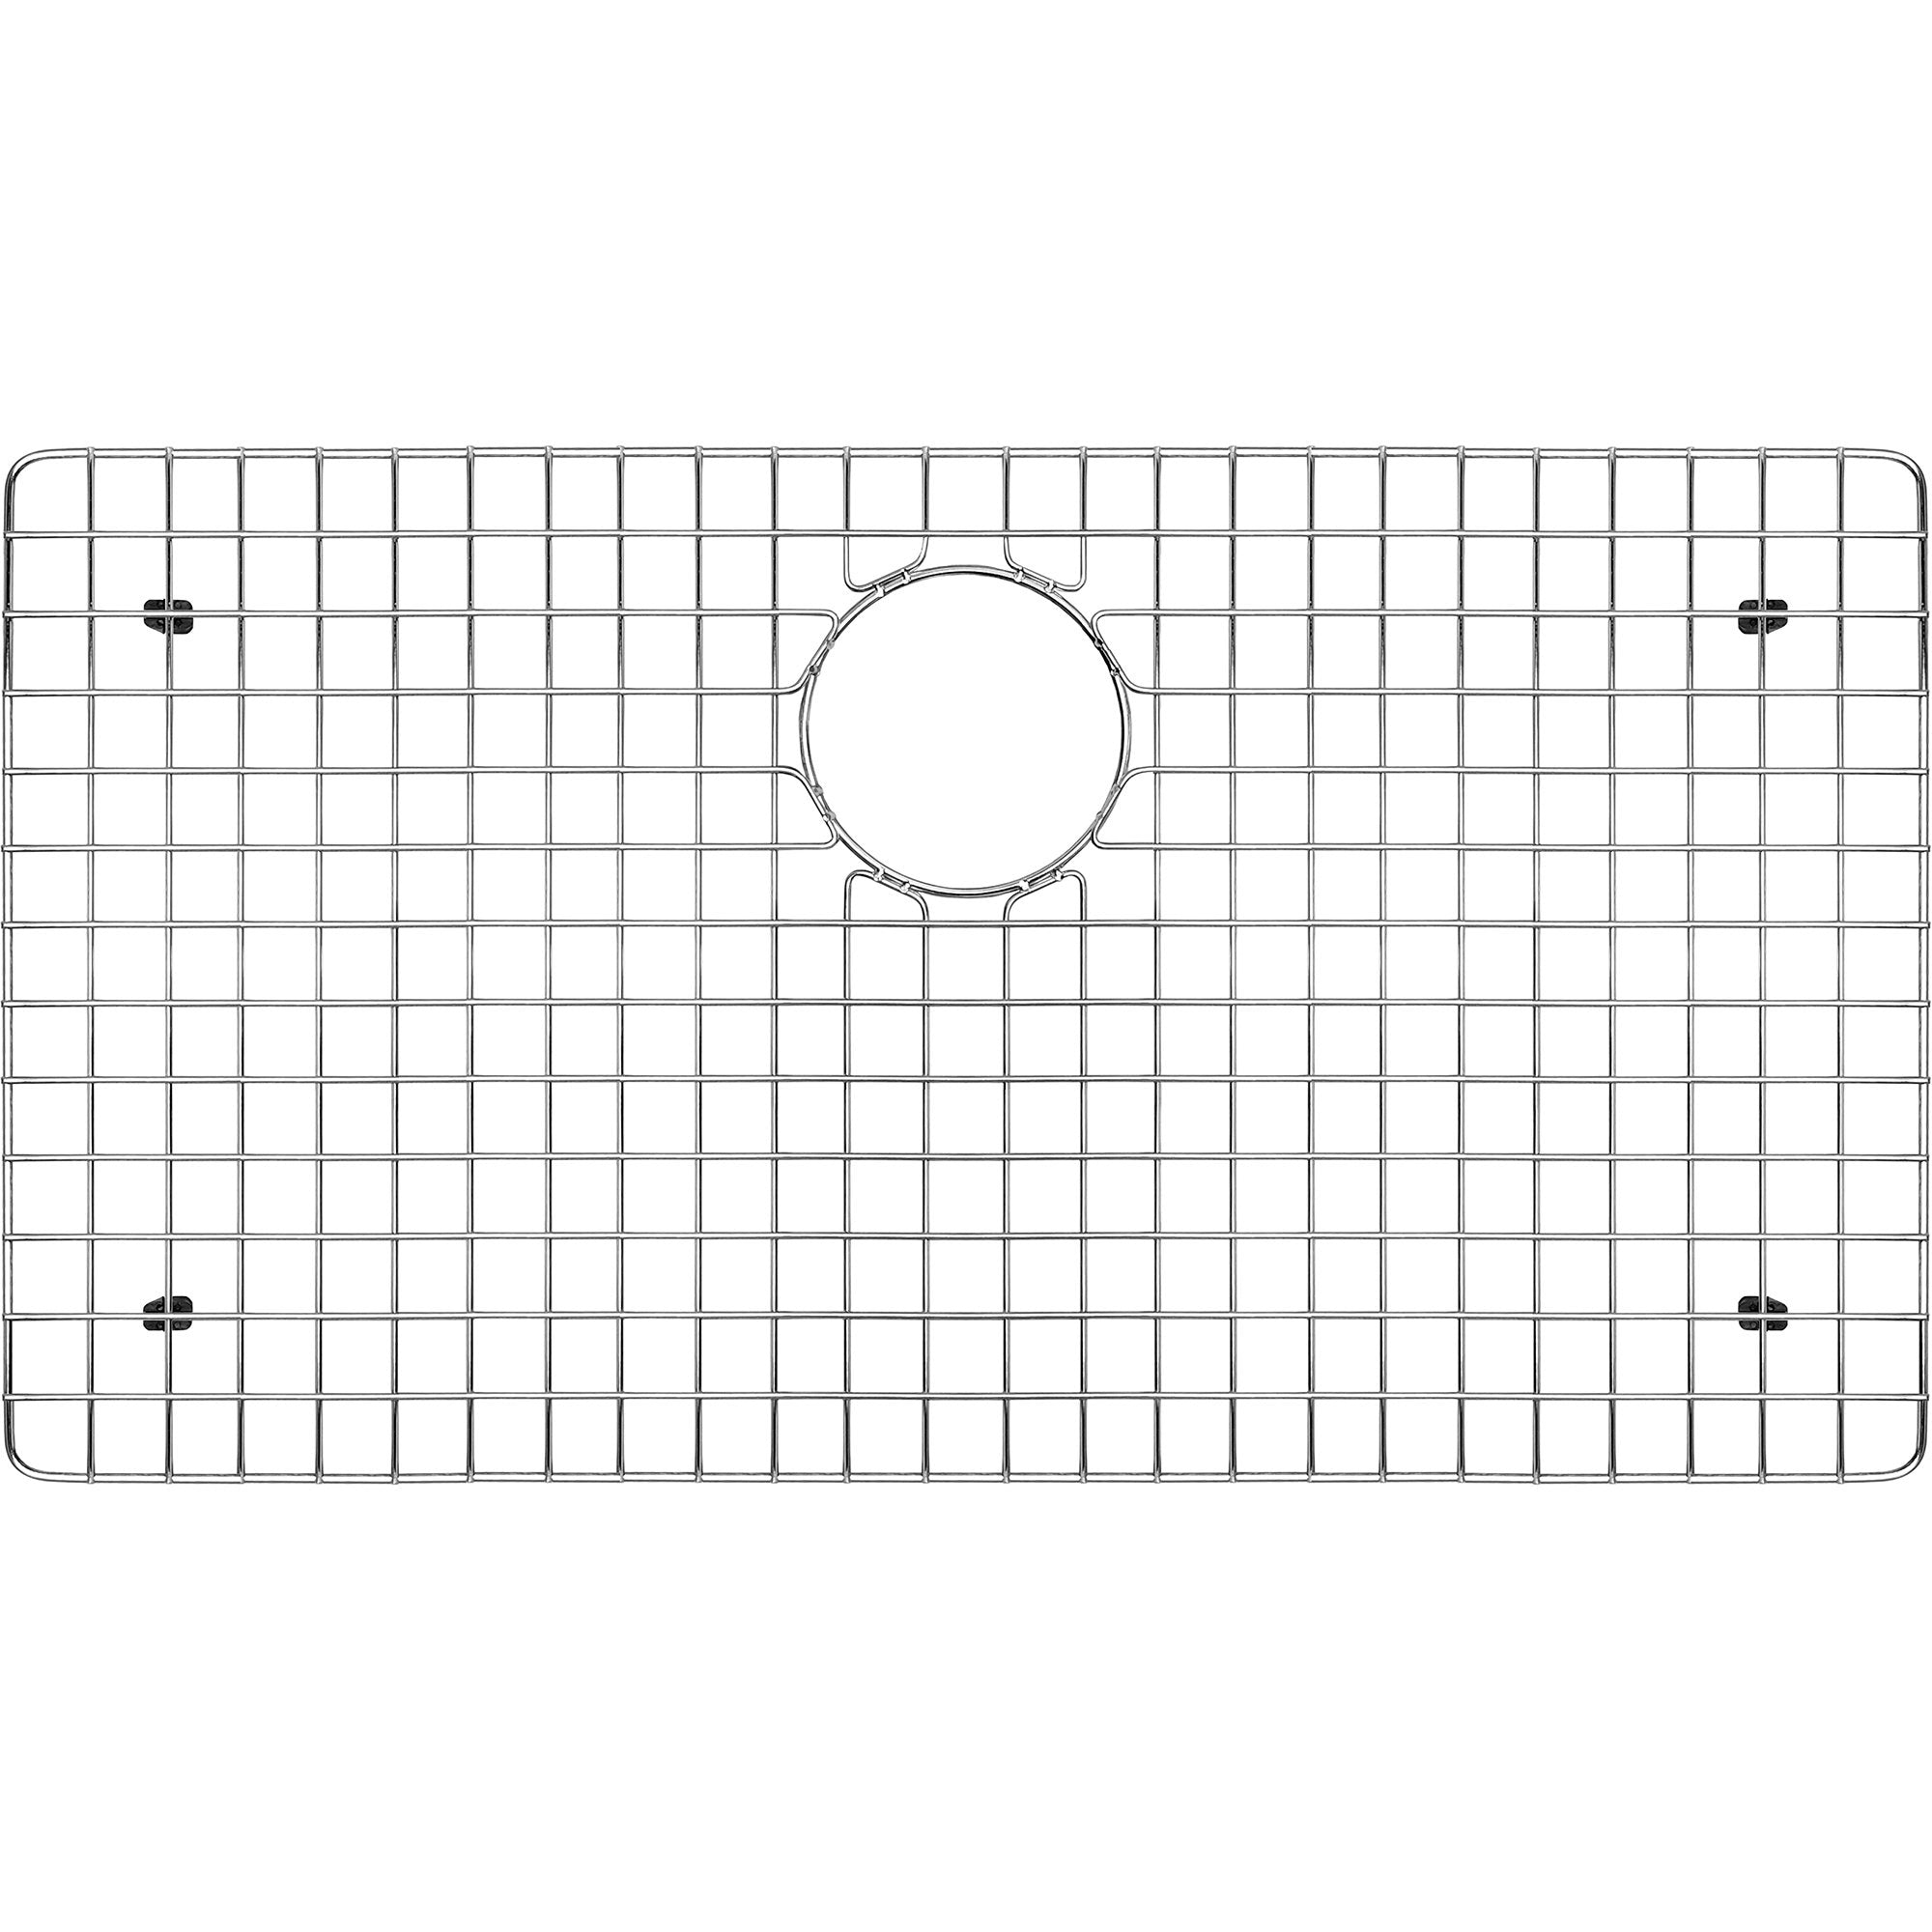 Stainless Steel Kitchen Sink Grid For Noah's Sink Model WHNCMAP3021